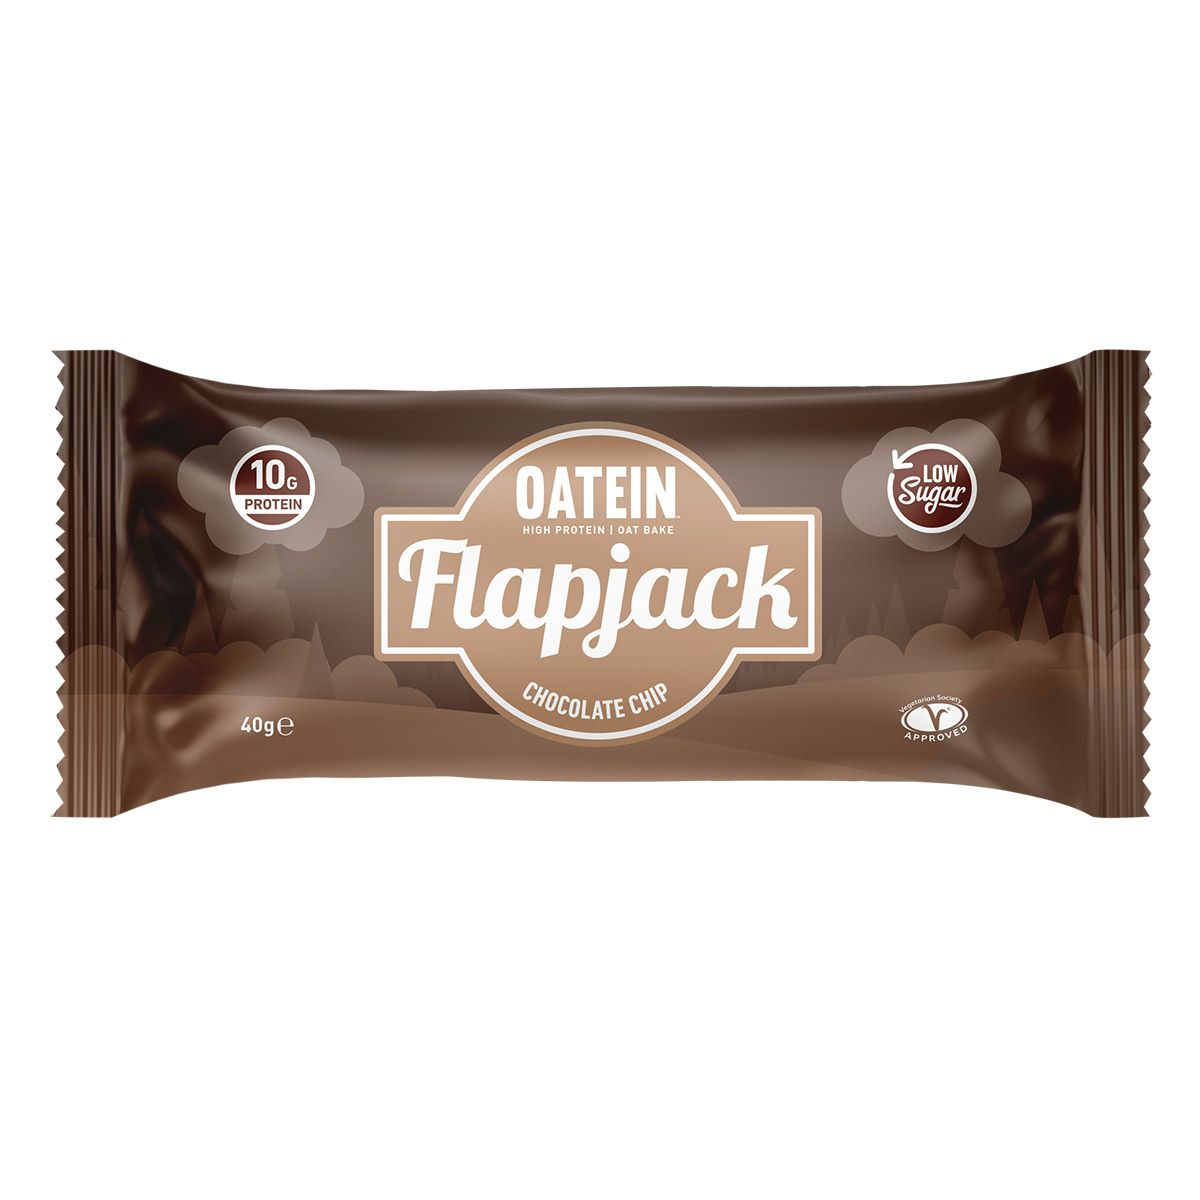 Oatein Flapjack - Chocolate Chip 40g